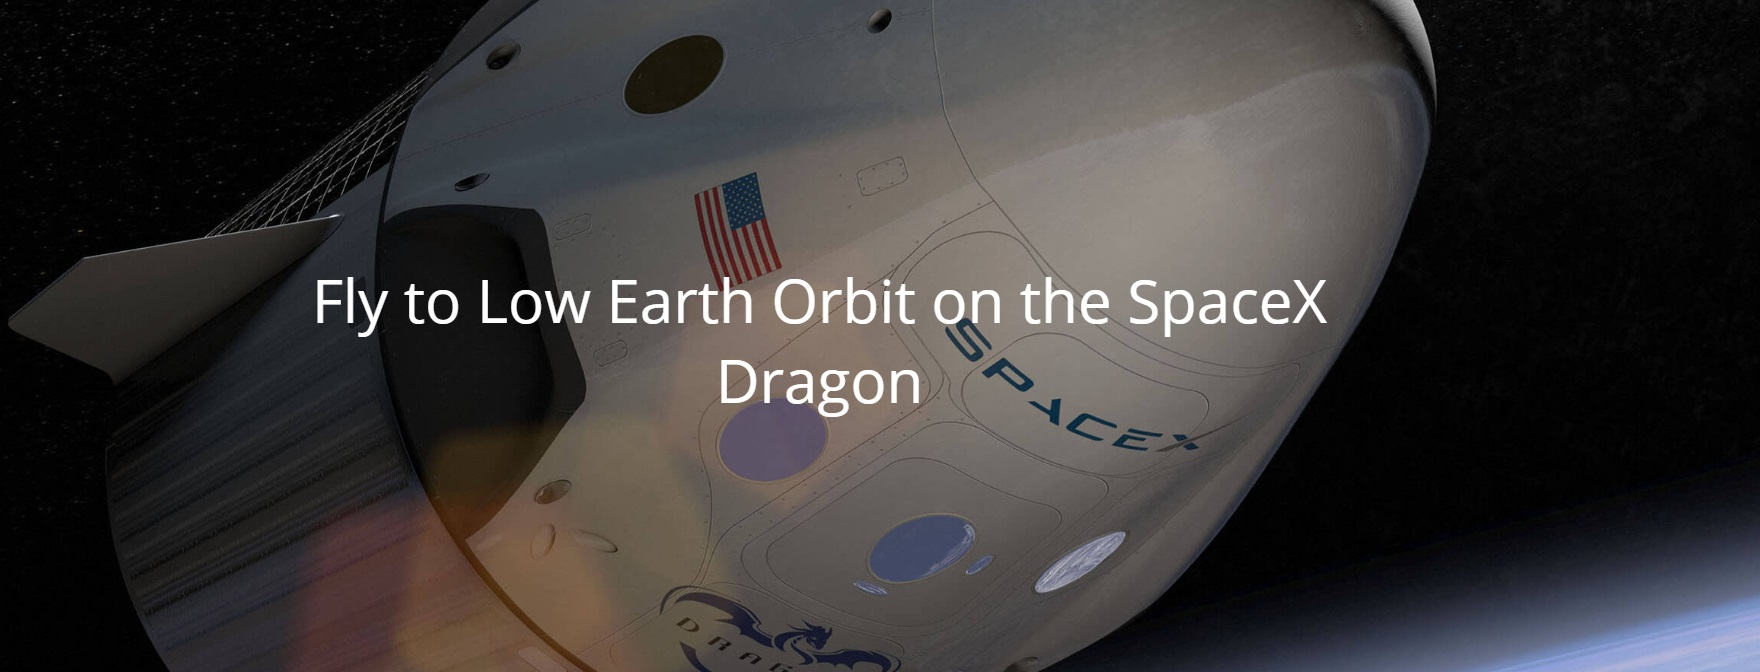 vol orbite basse dragon spacex